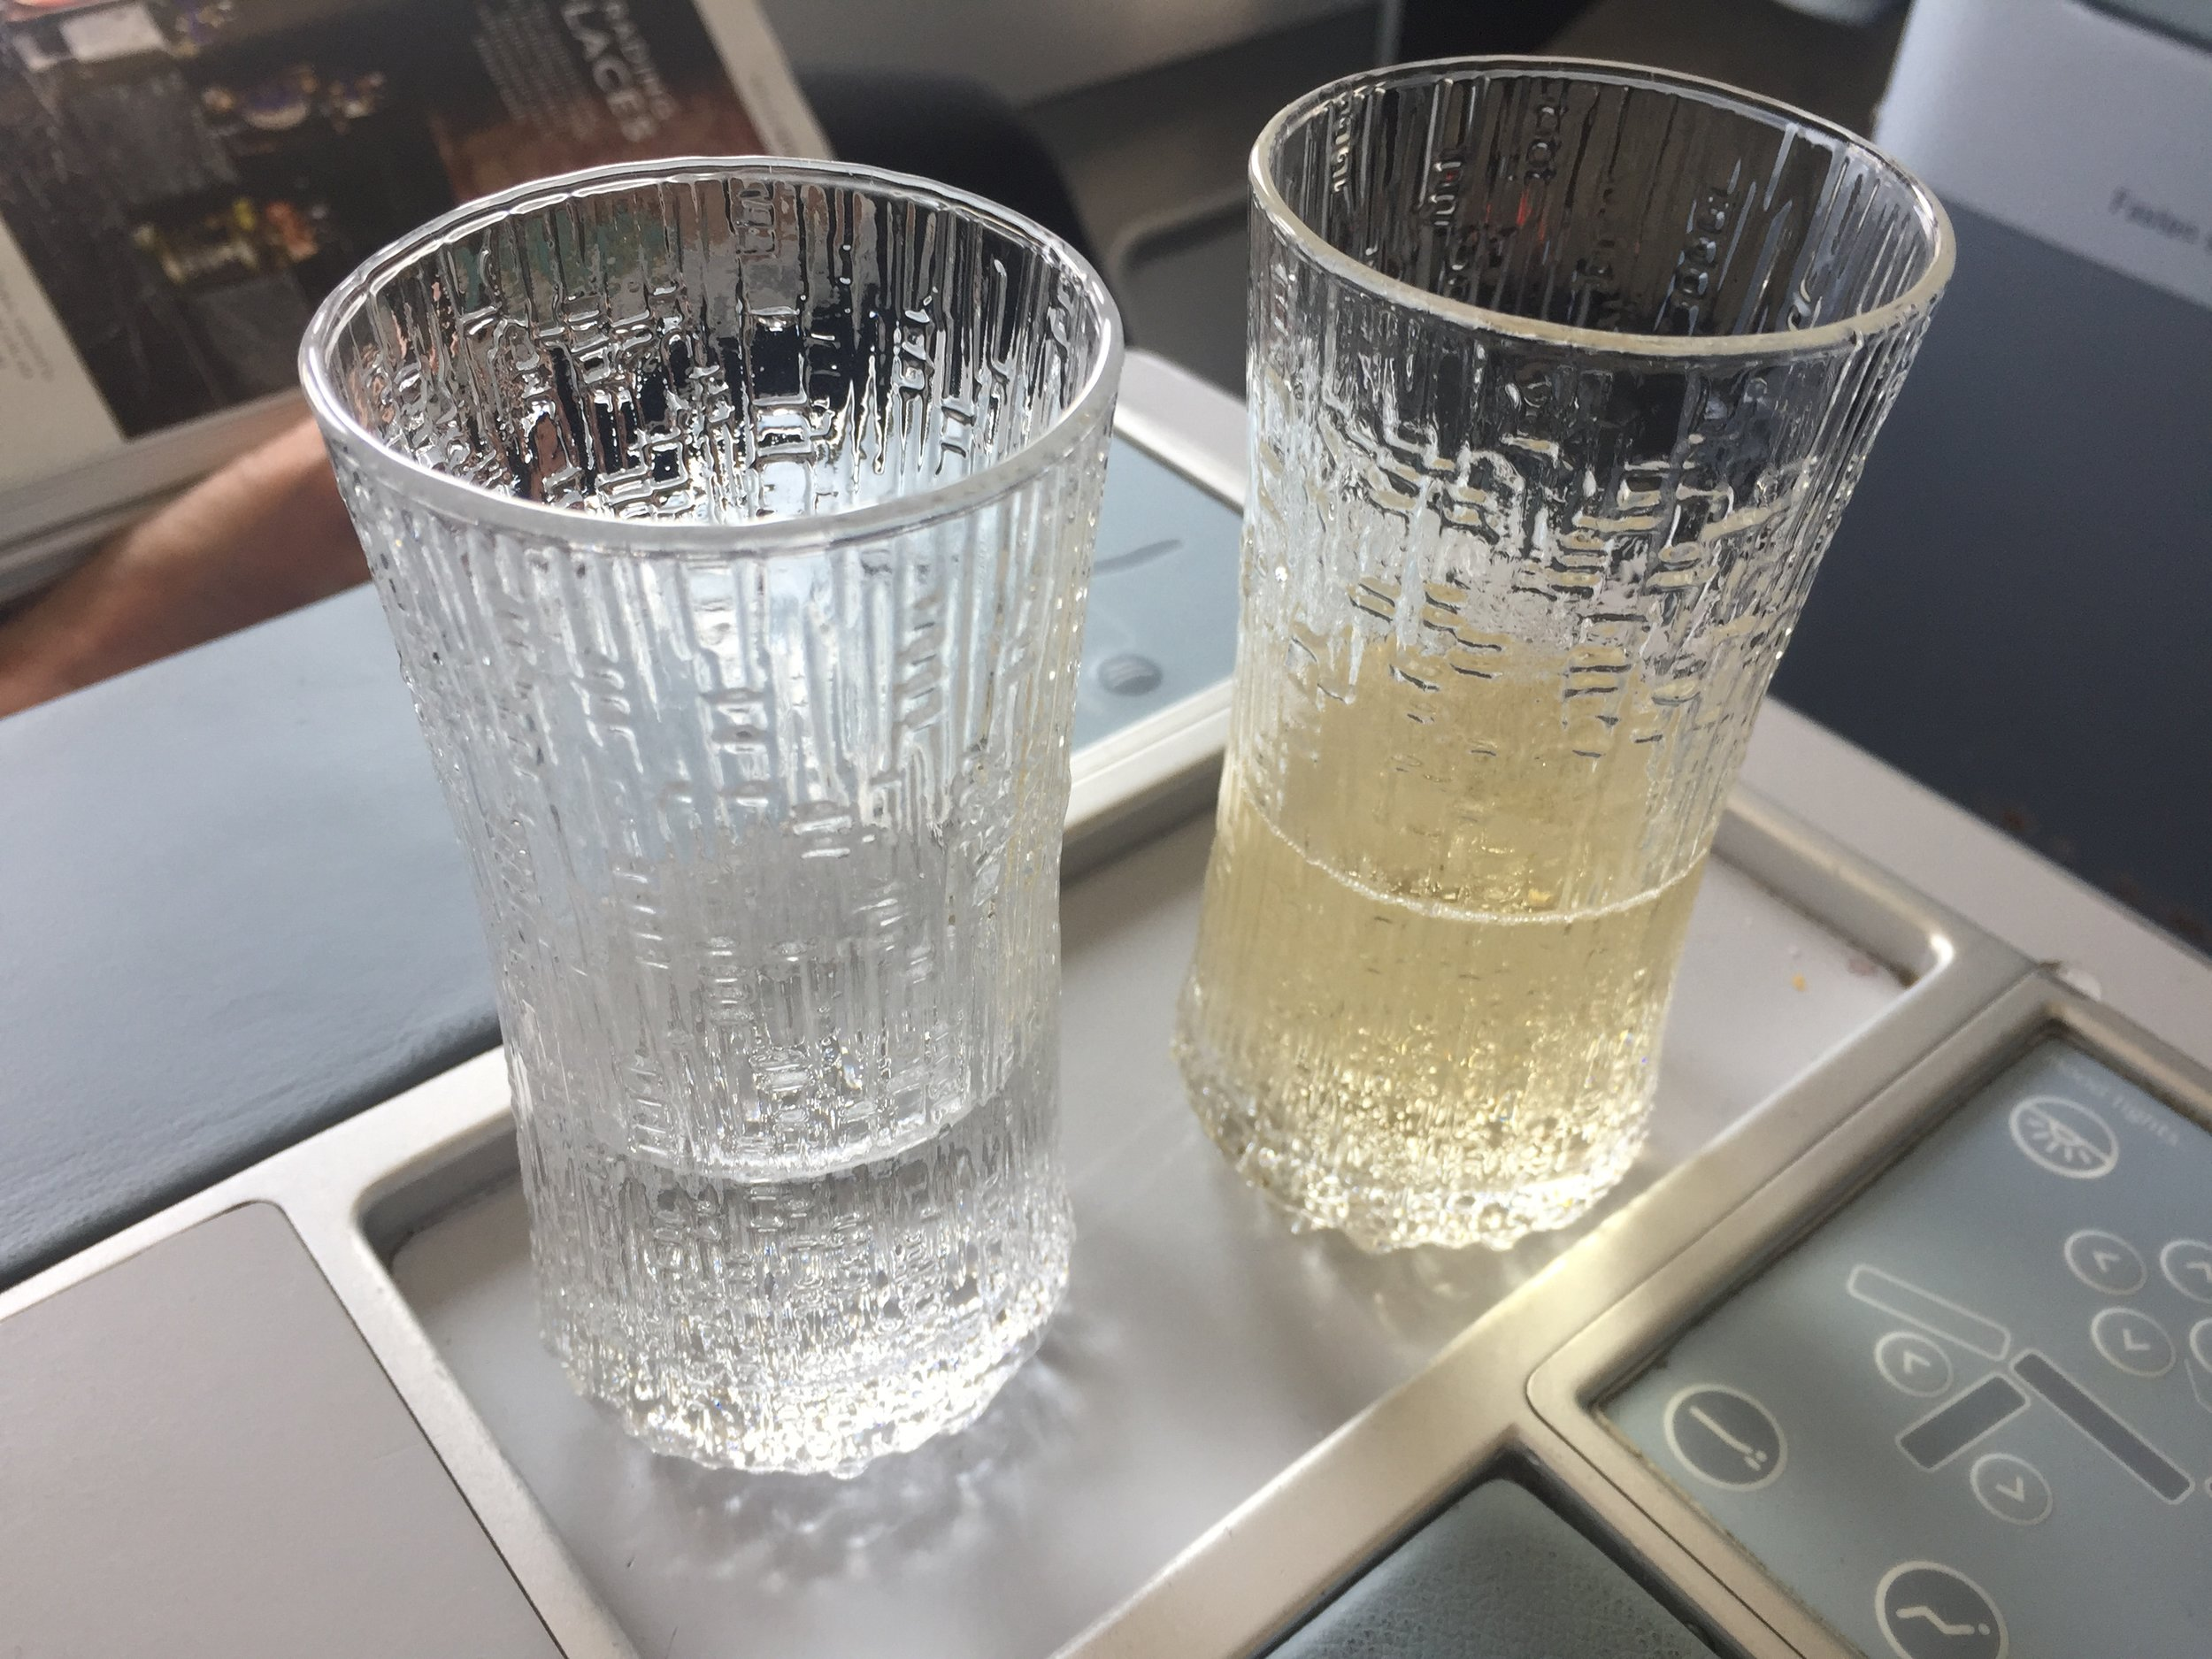 Eight of these very grown up glasses are coming home with us